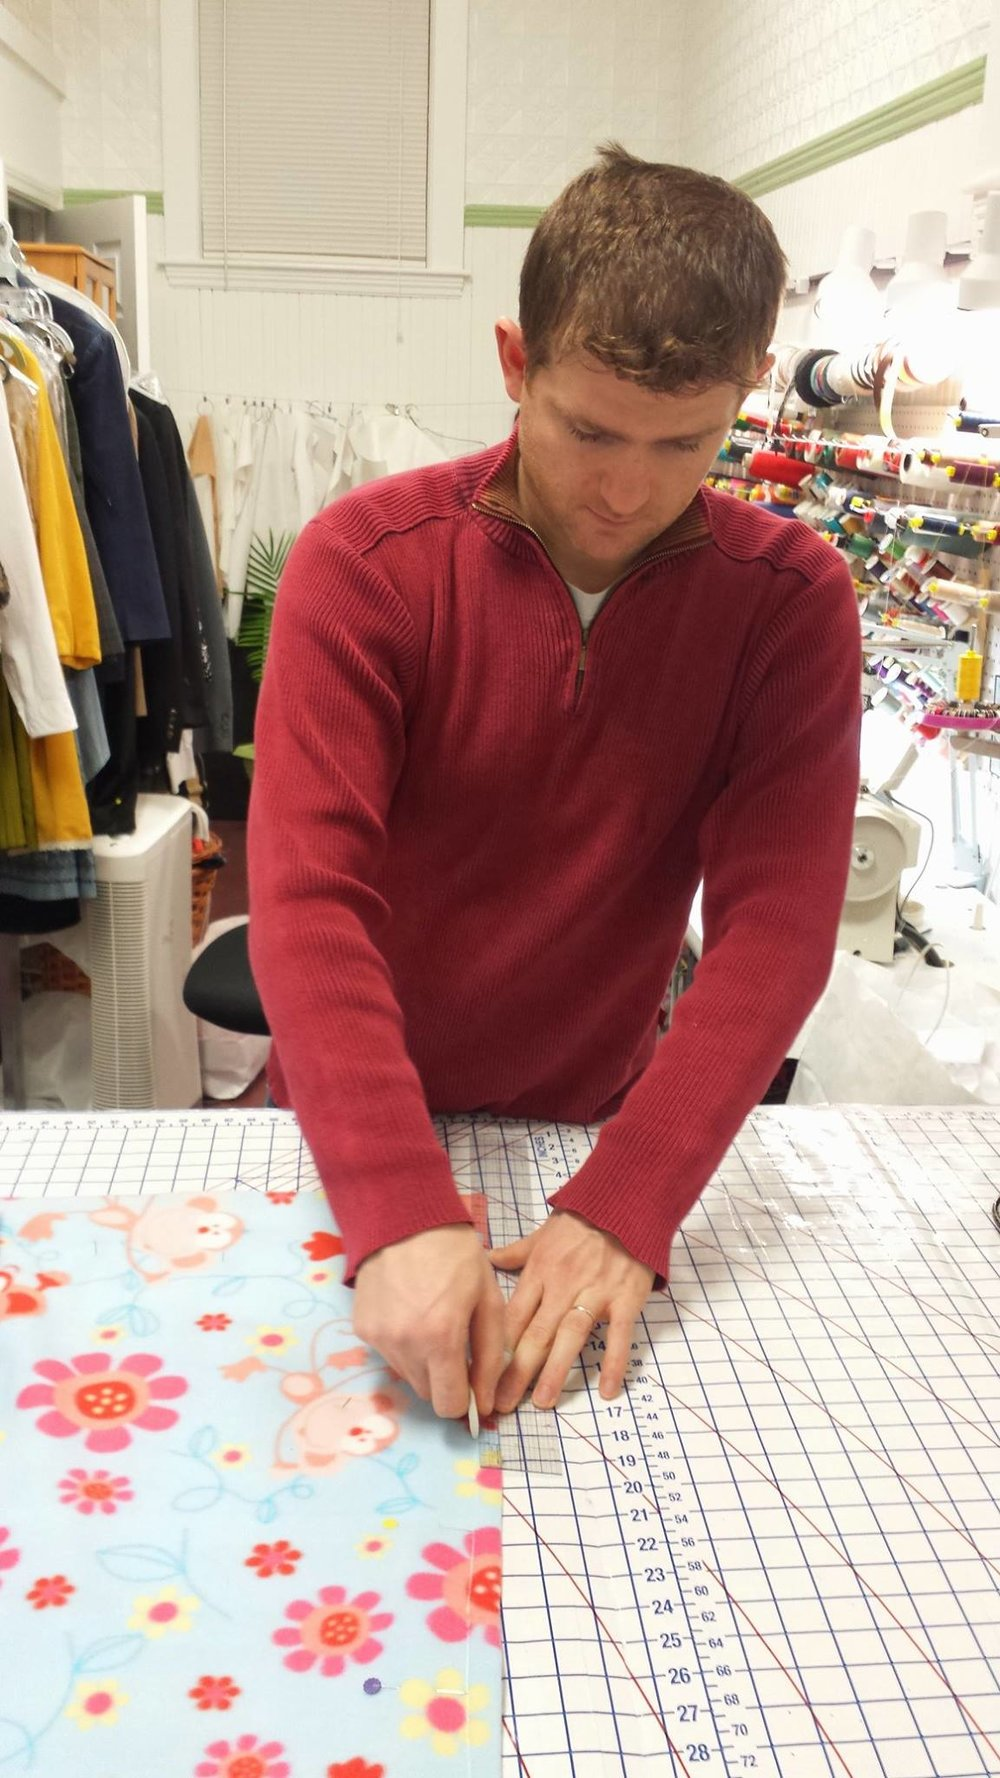 Konstantin is learning to make a baby blanket for his daughter